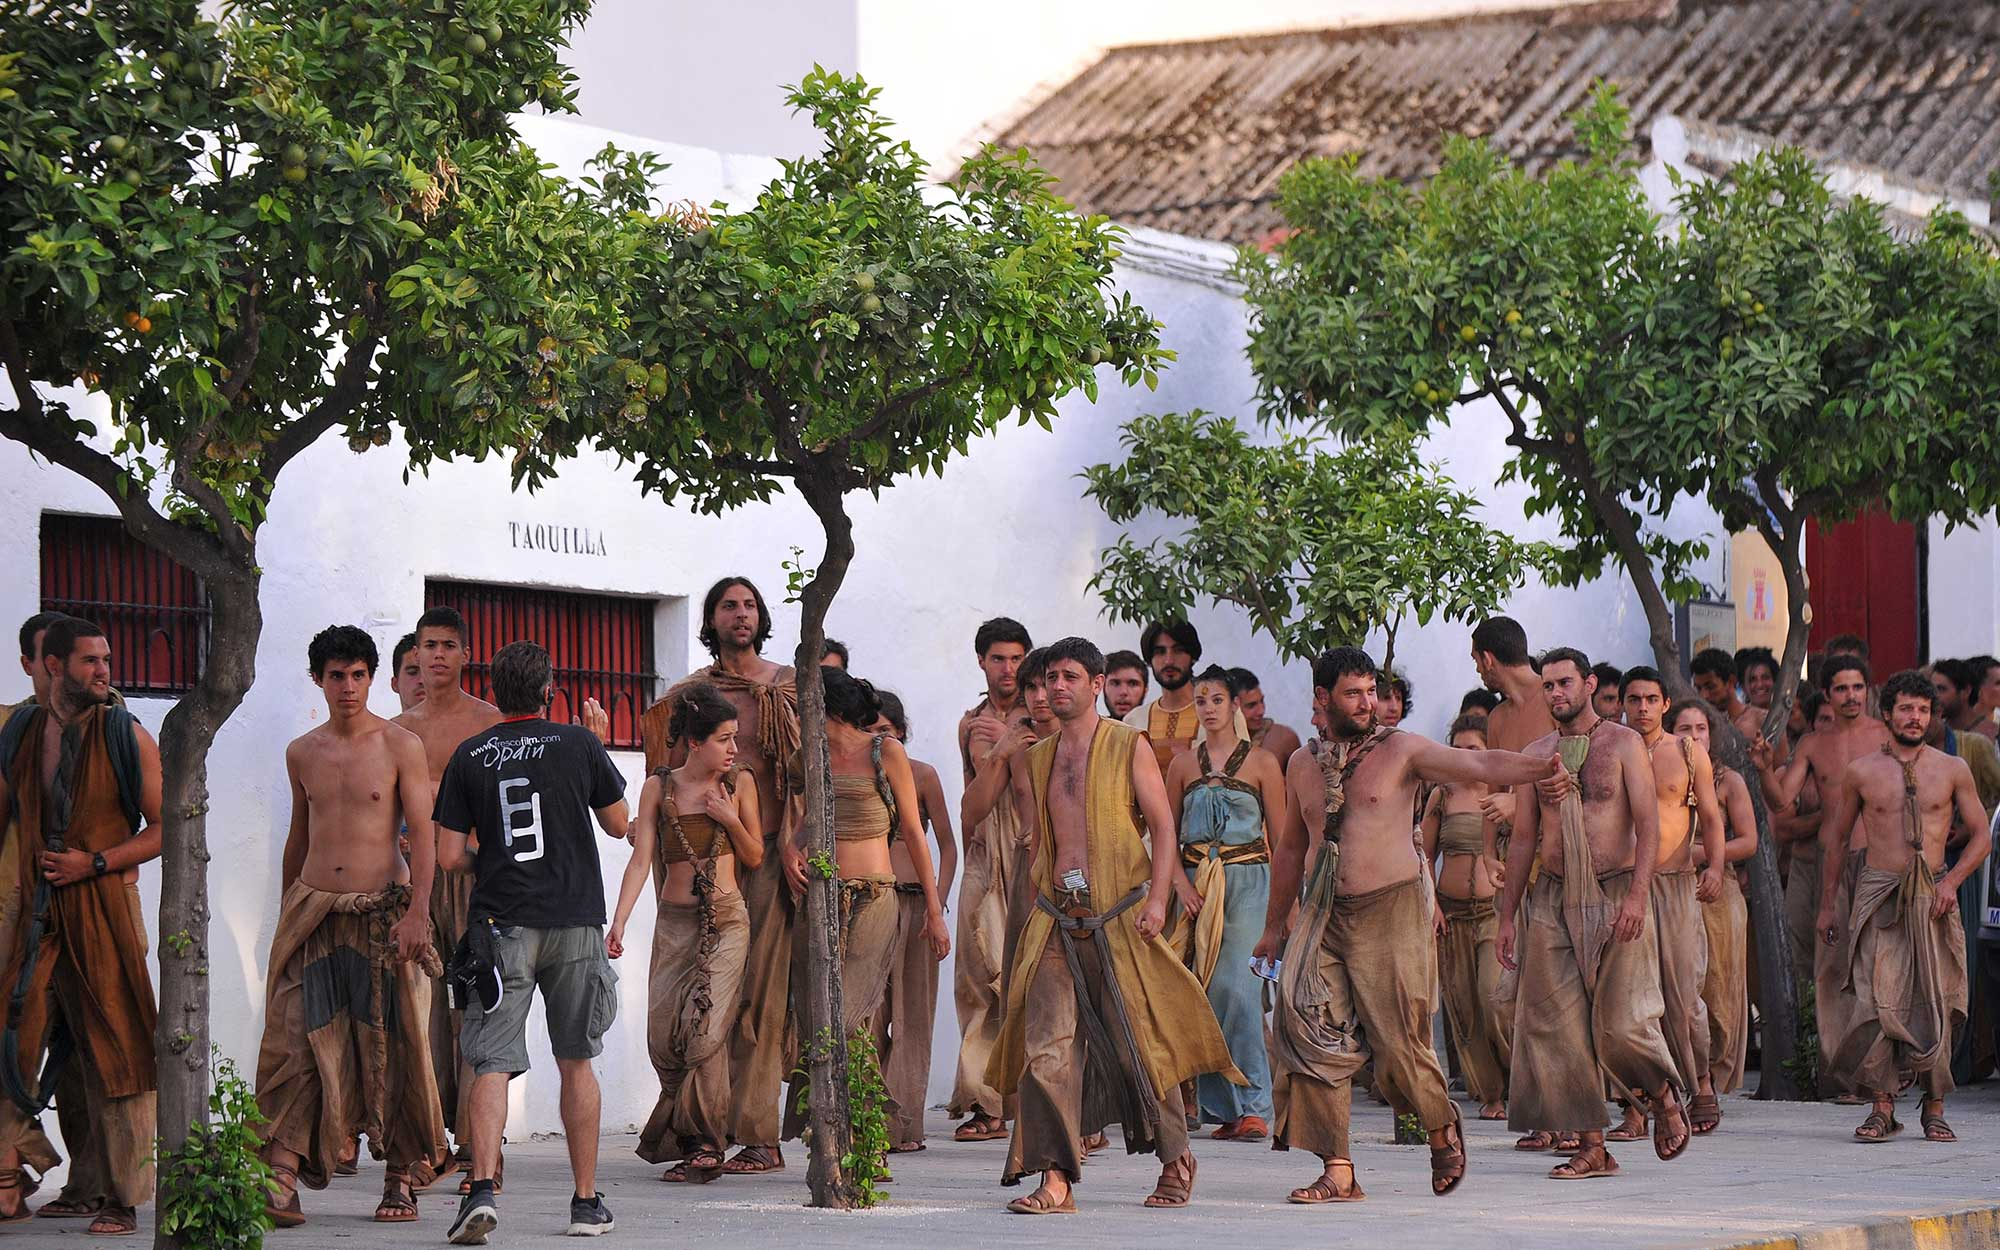 'Game of Thrones' Boosts Tourism in Tiny Spanish Town